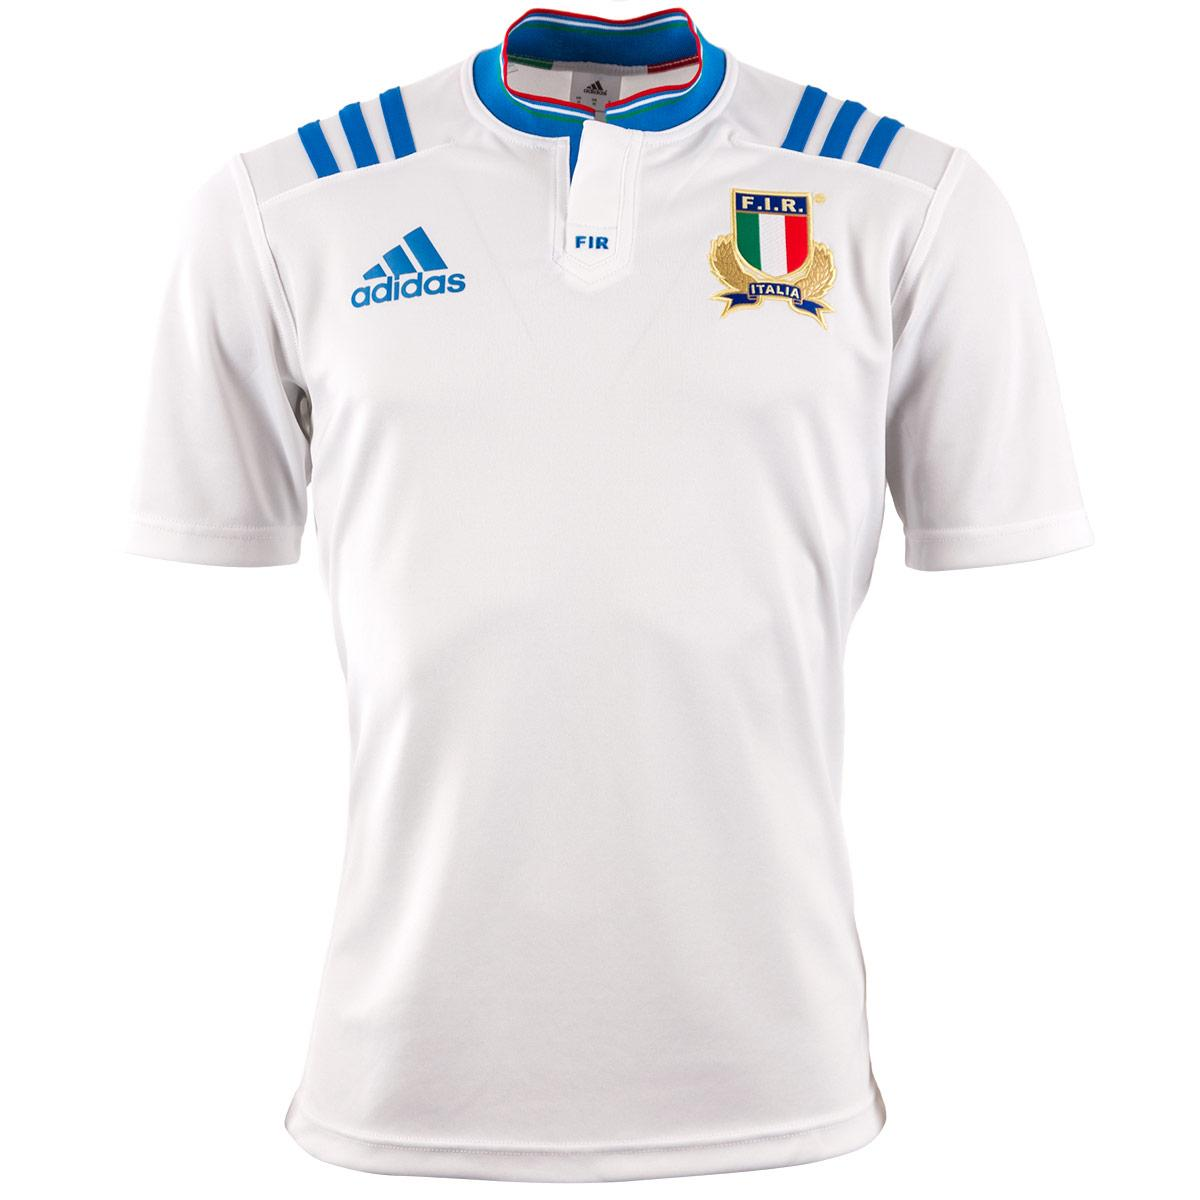 59dbb9d873f Italy Rugby 2015 Adidas Alternate Shirt. Italy15AltFront. Italy are one of  the few test nations who get a lot of mileage out of their alternate jersey.